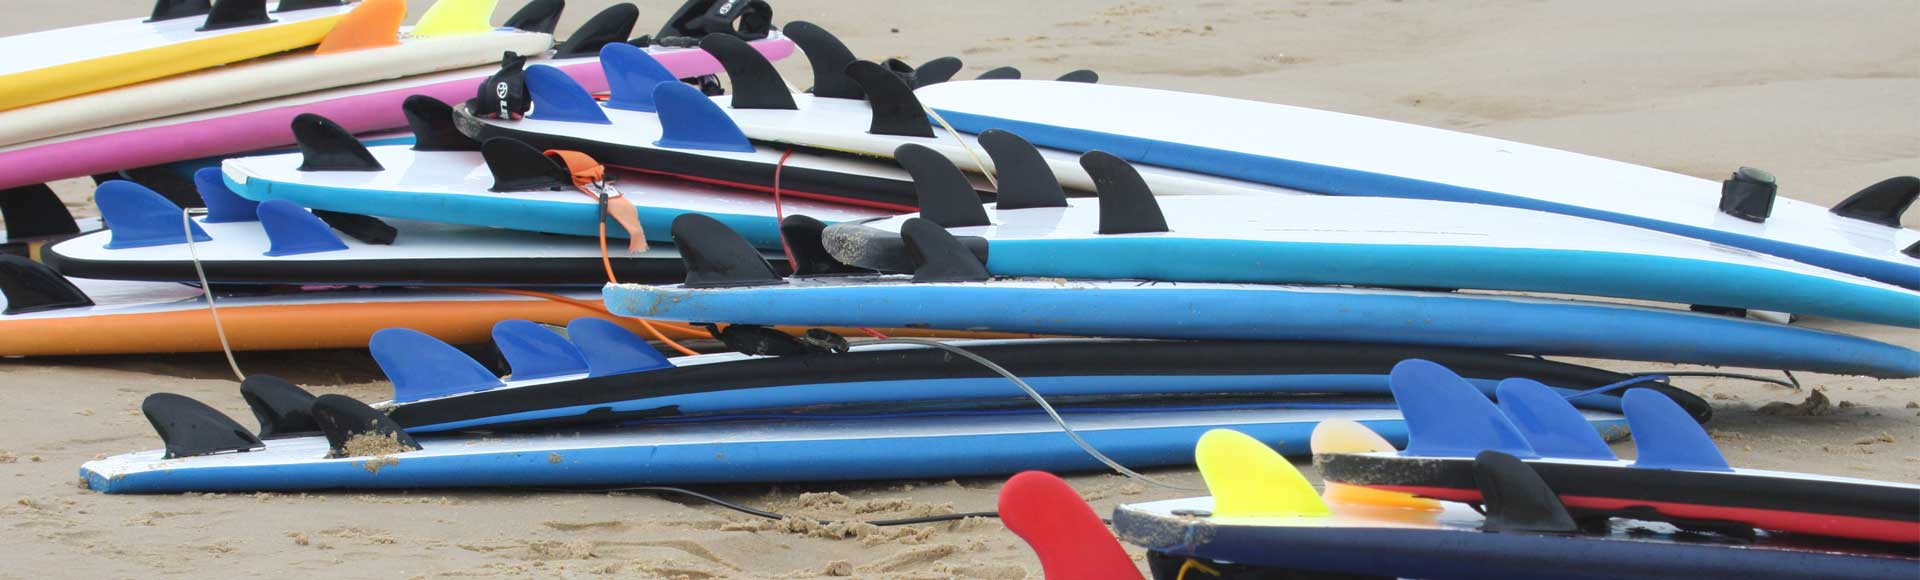 matos-planches-cours-surf-messanges